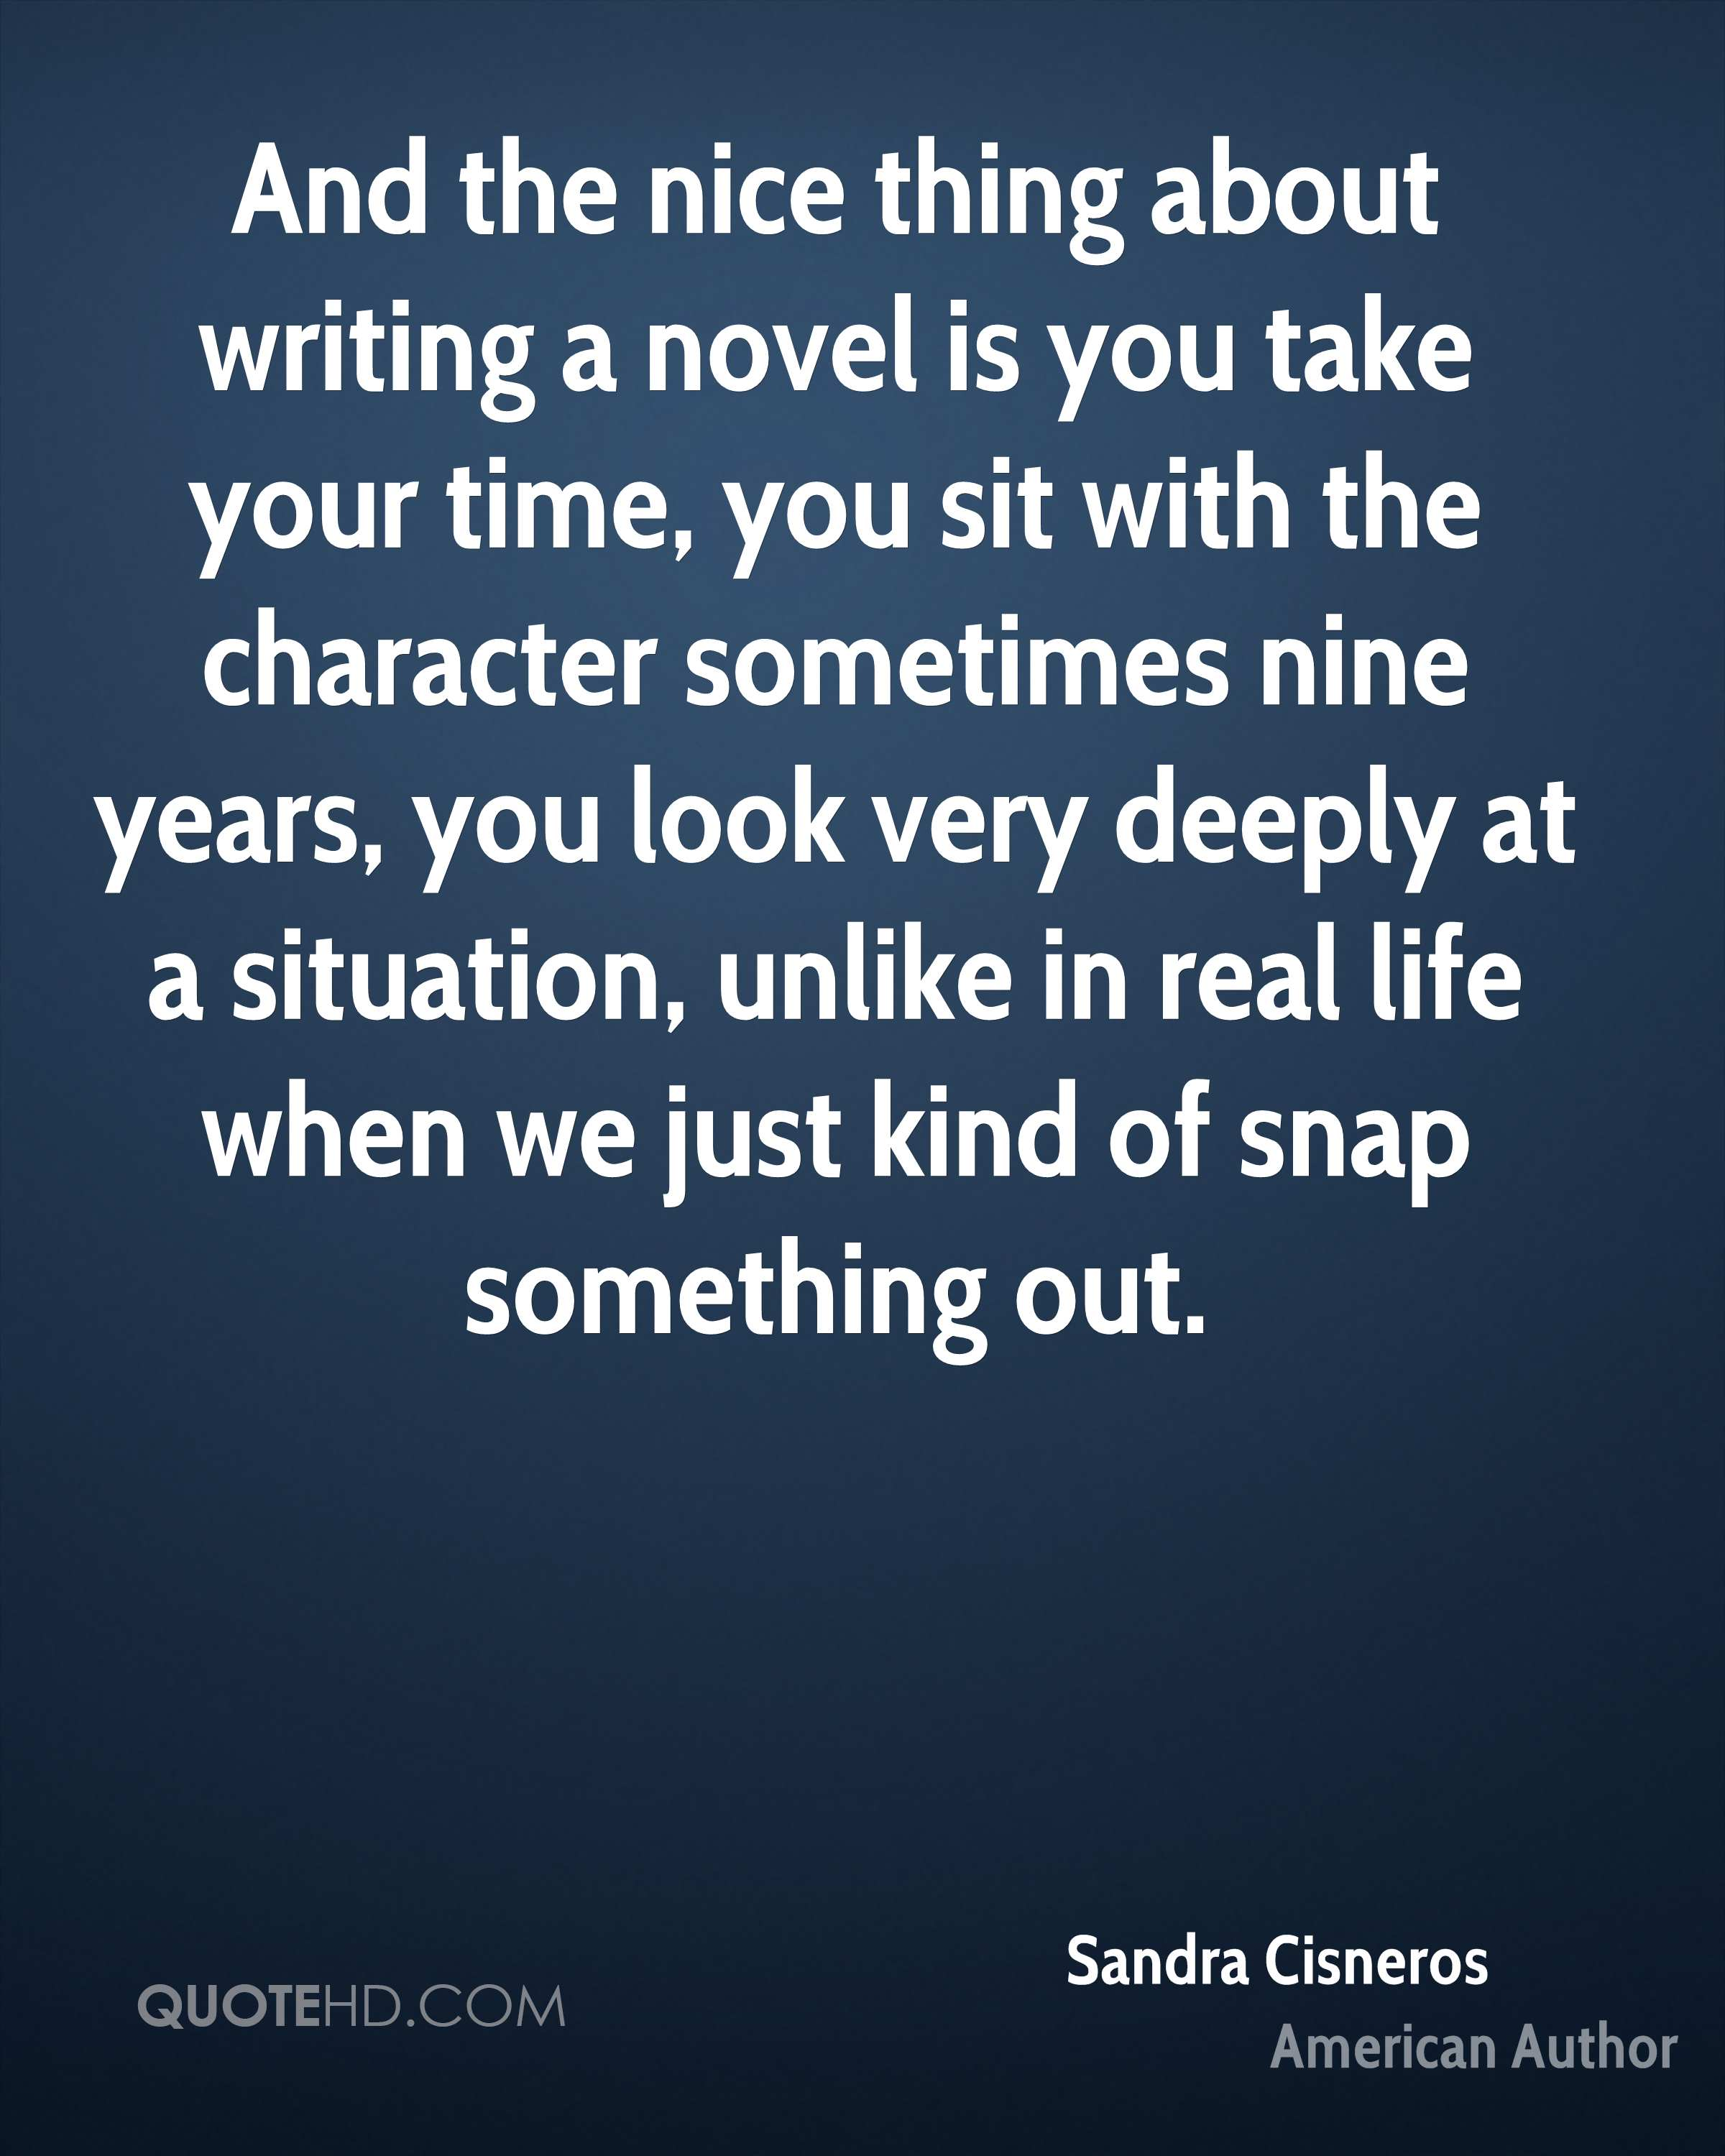 And the nice thing about writing a novel is you take your time, you sit with the character sometimes nine years, you look very deeply at a situation, unlike in real life when we just kind of snap something out.